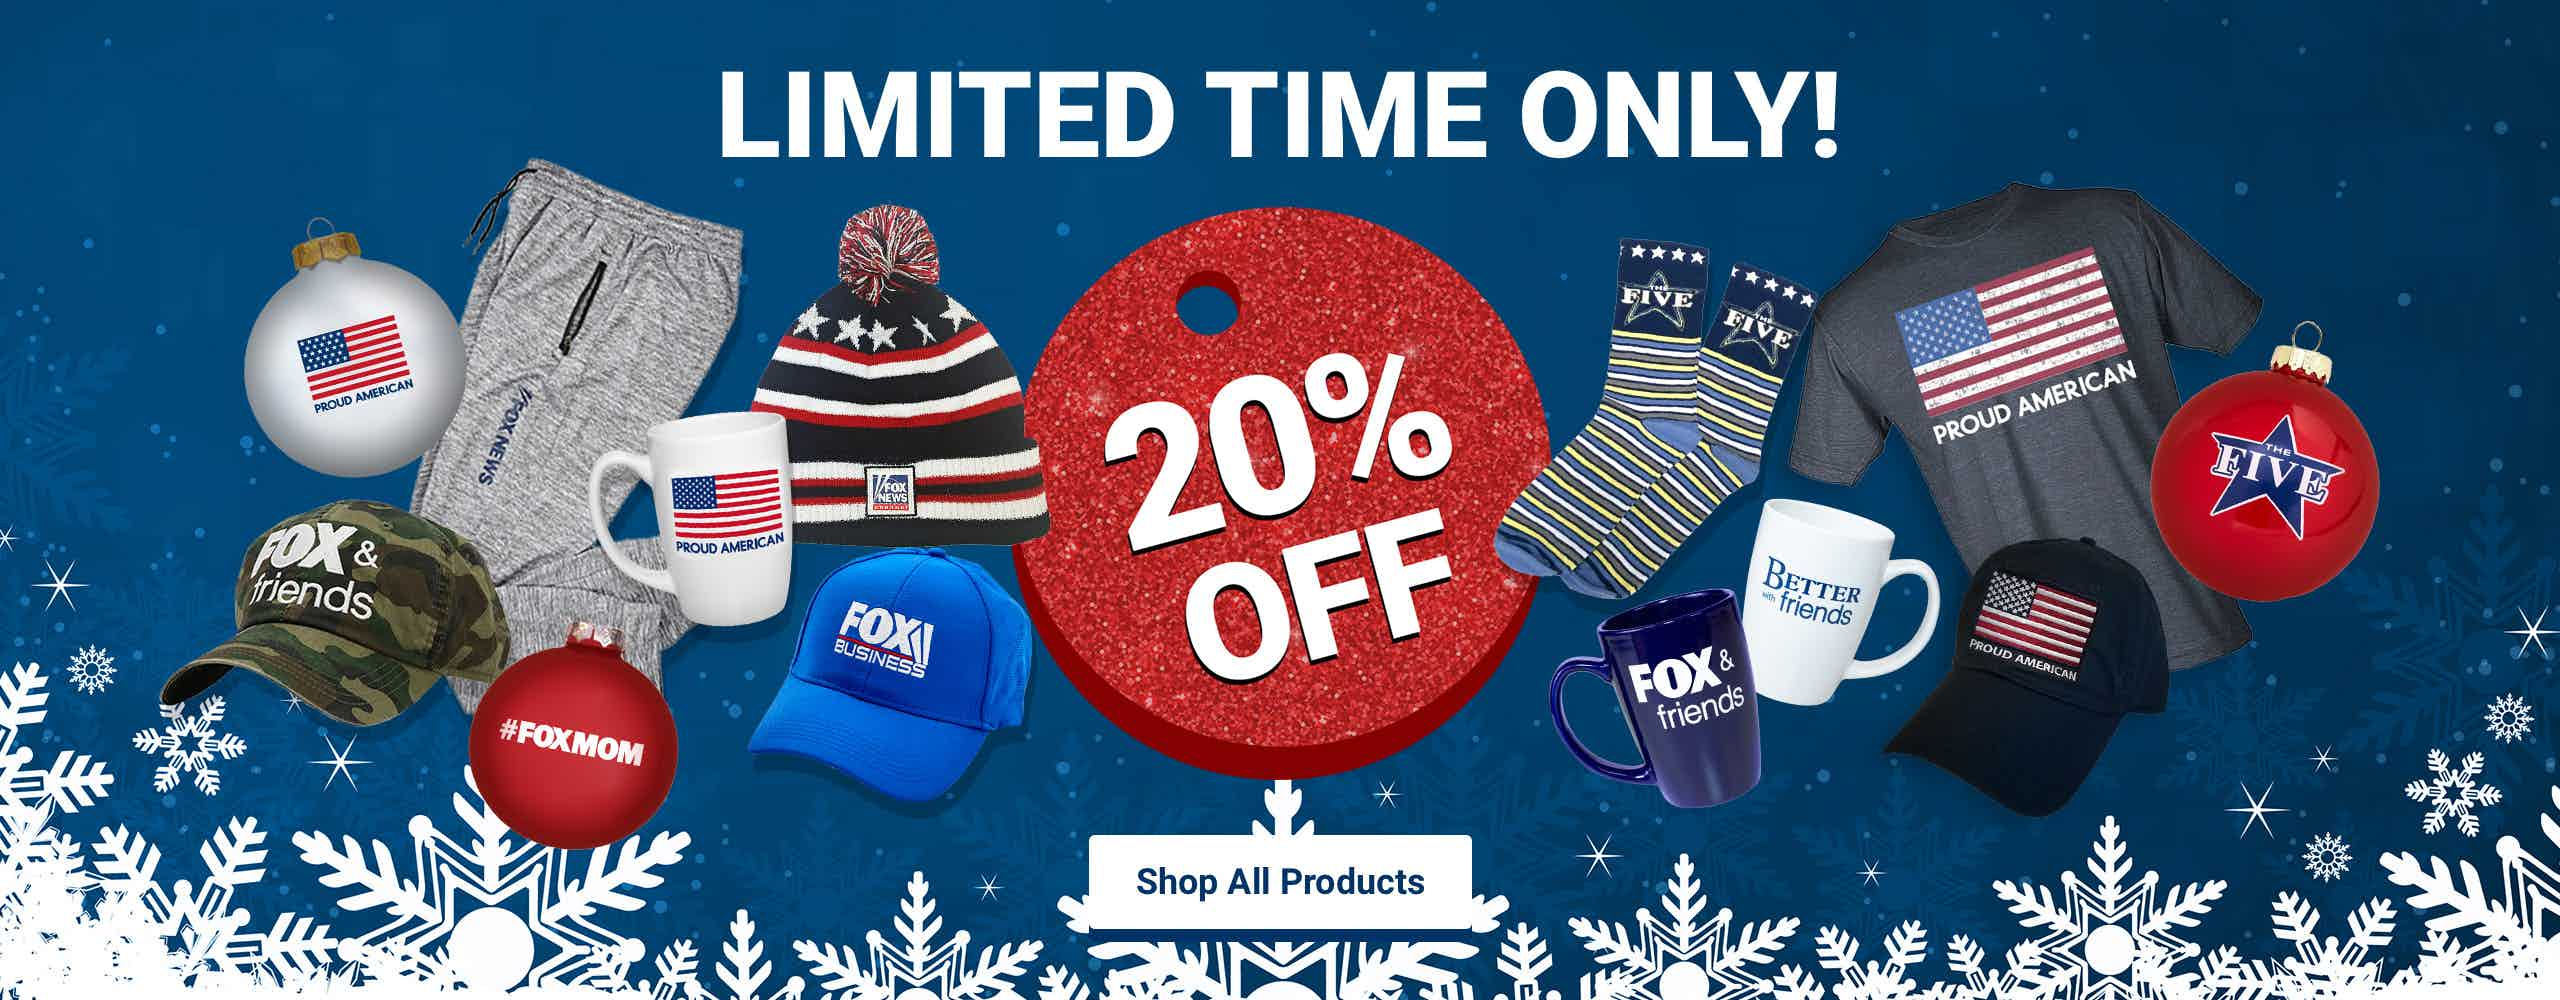 Fox News Black Friday